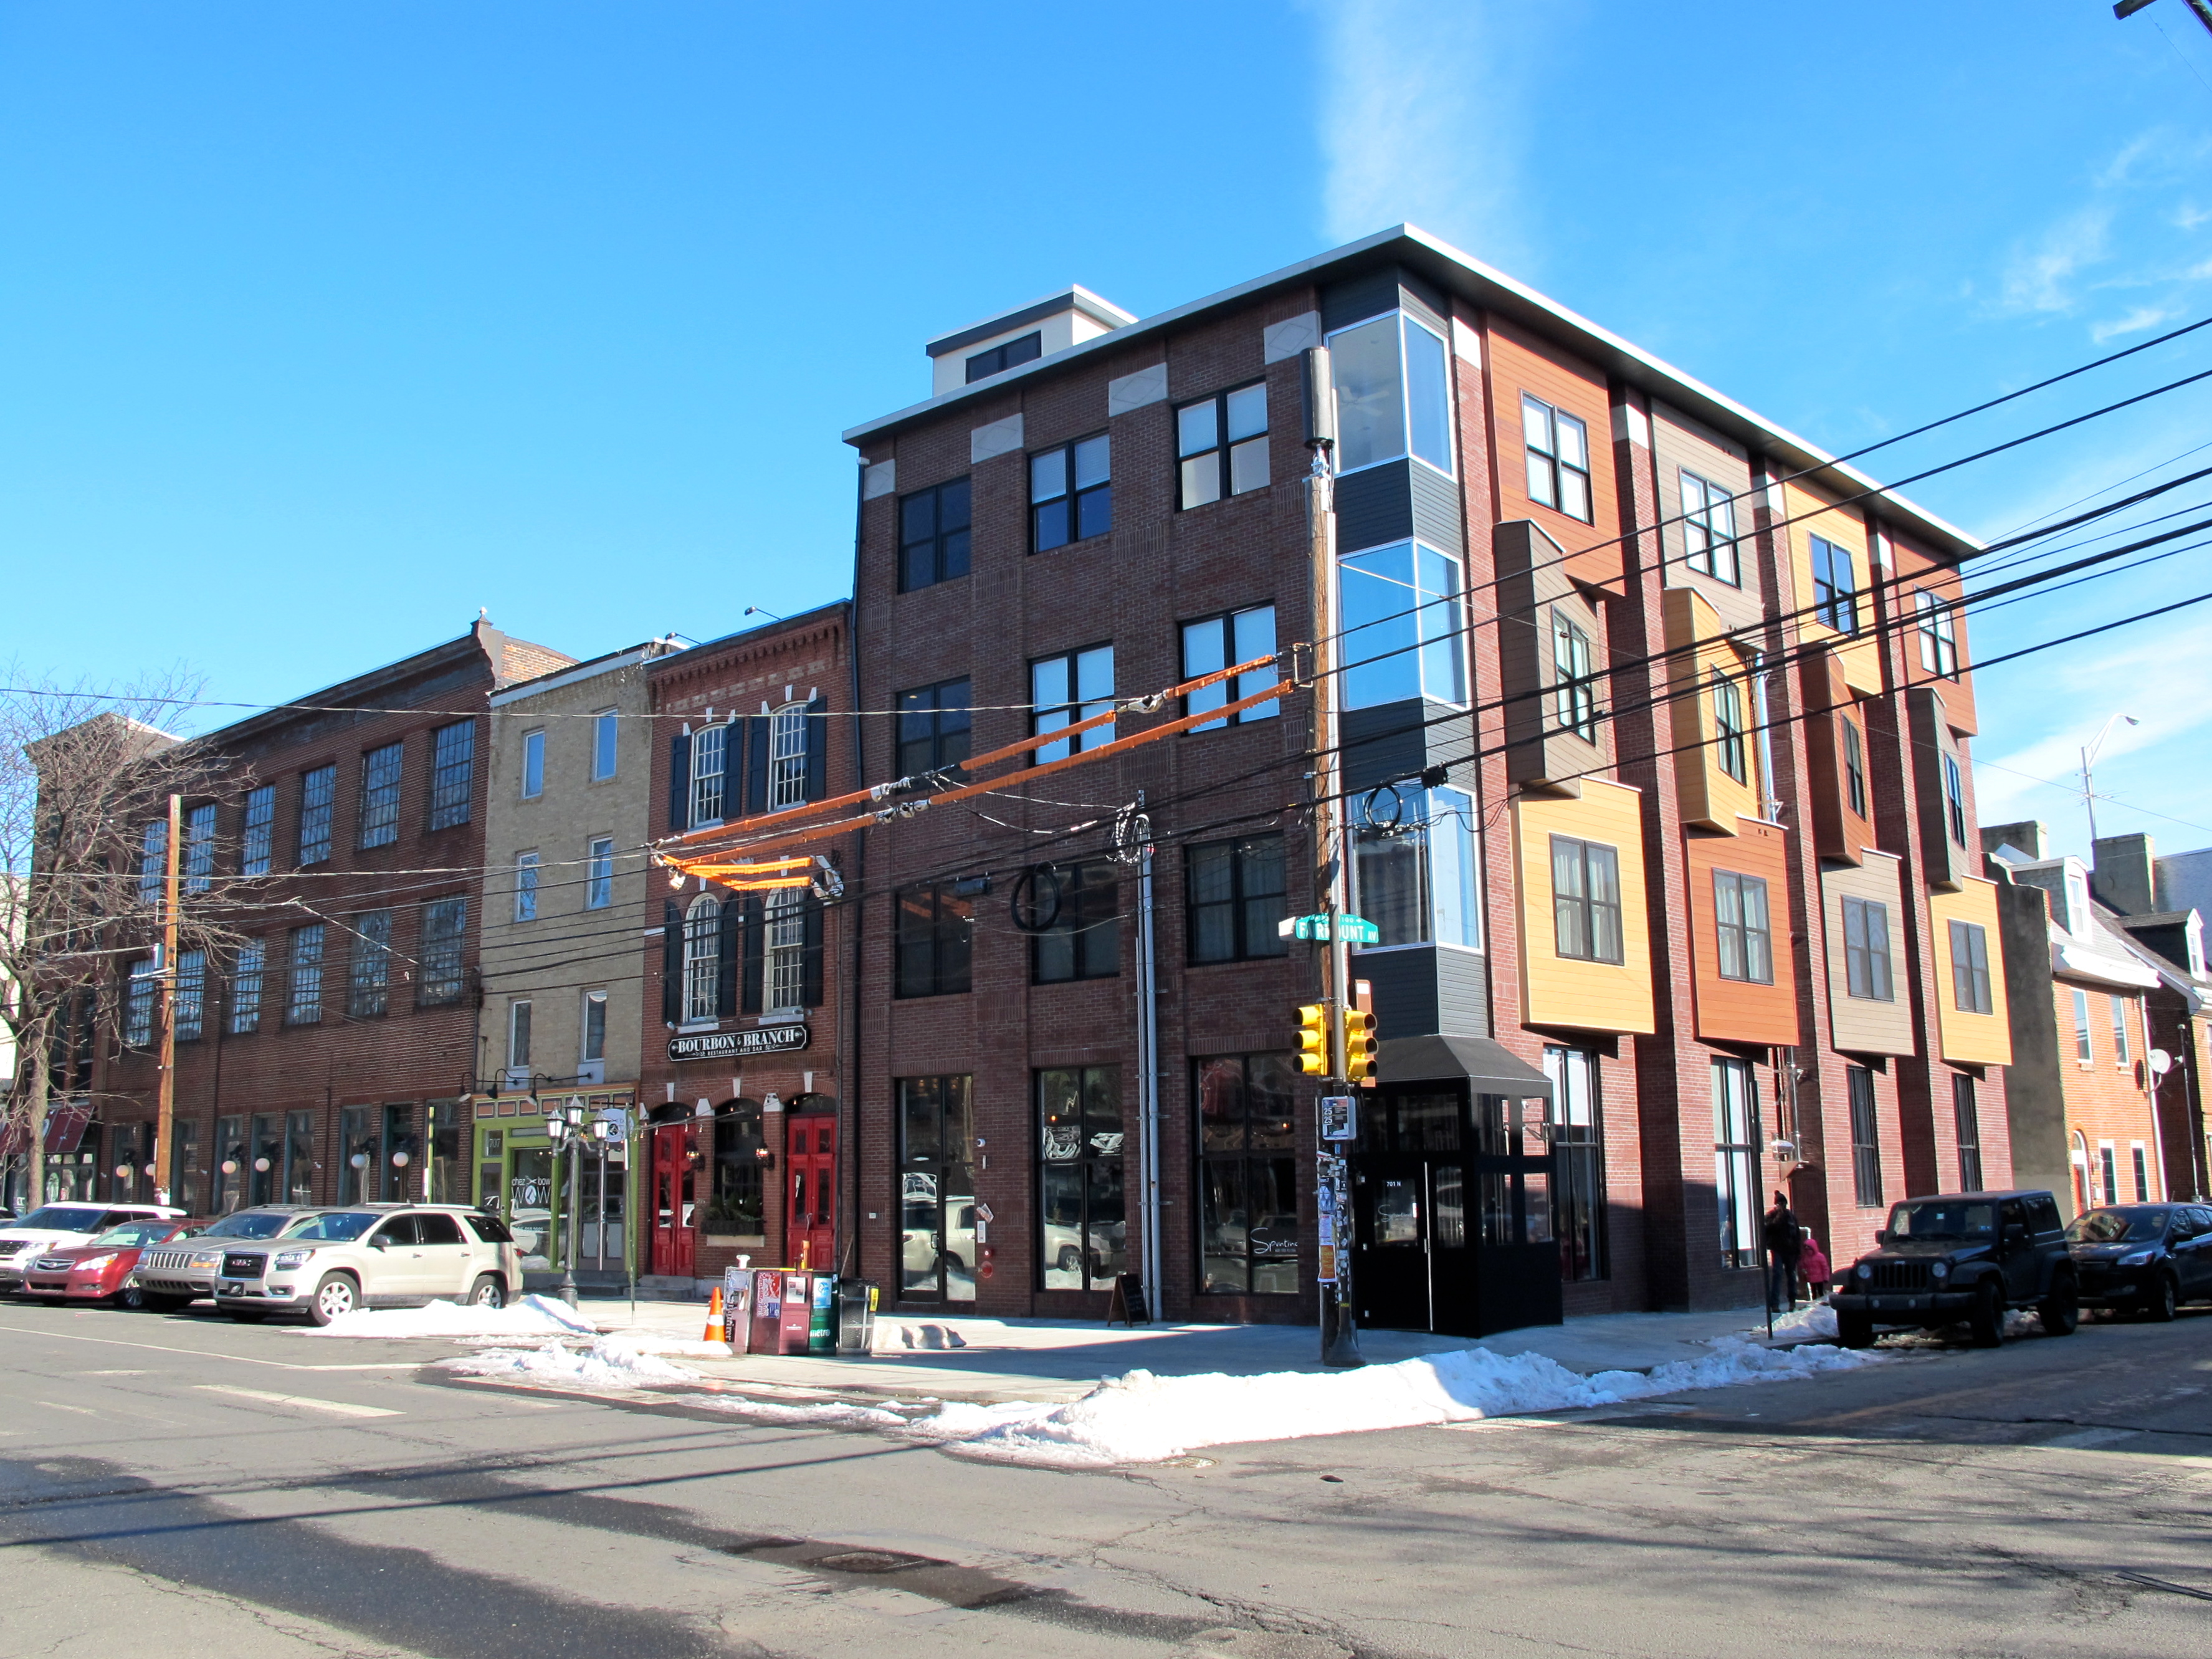 Mixed-use infill on North 2nd Street, Northern Liberties, January 2016